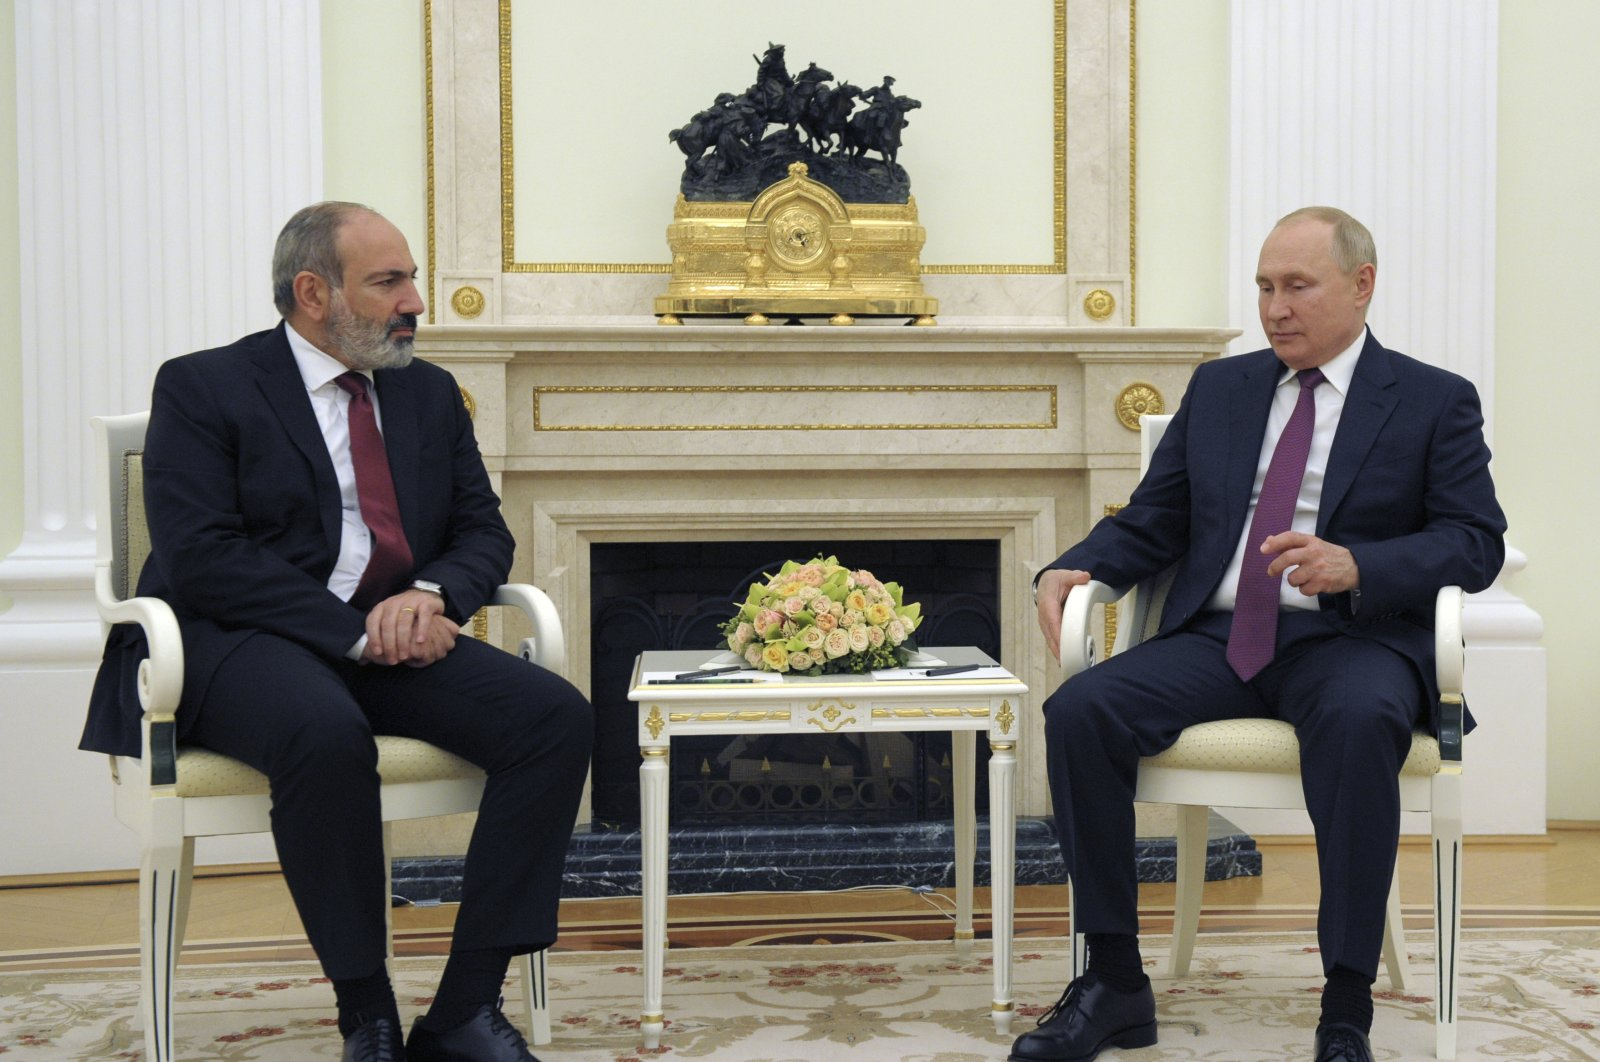 Russian President Vladimir Putin (R) and Prime Minister of Armenia Nikol Pashinian speak during their meeting in Moscow, Russia, Oct. 12, 2021. (AP Photo)